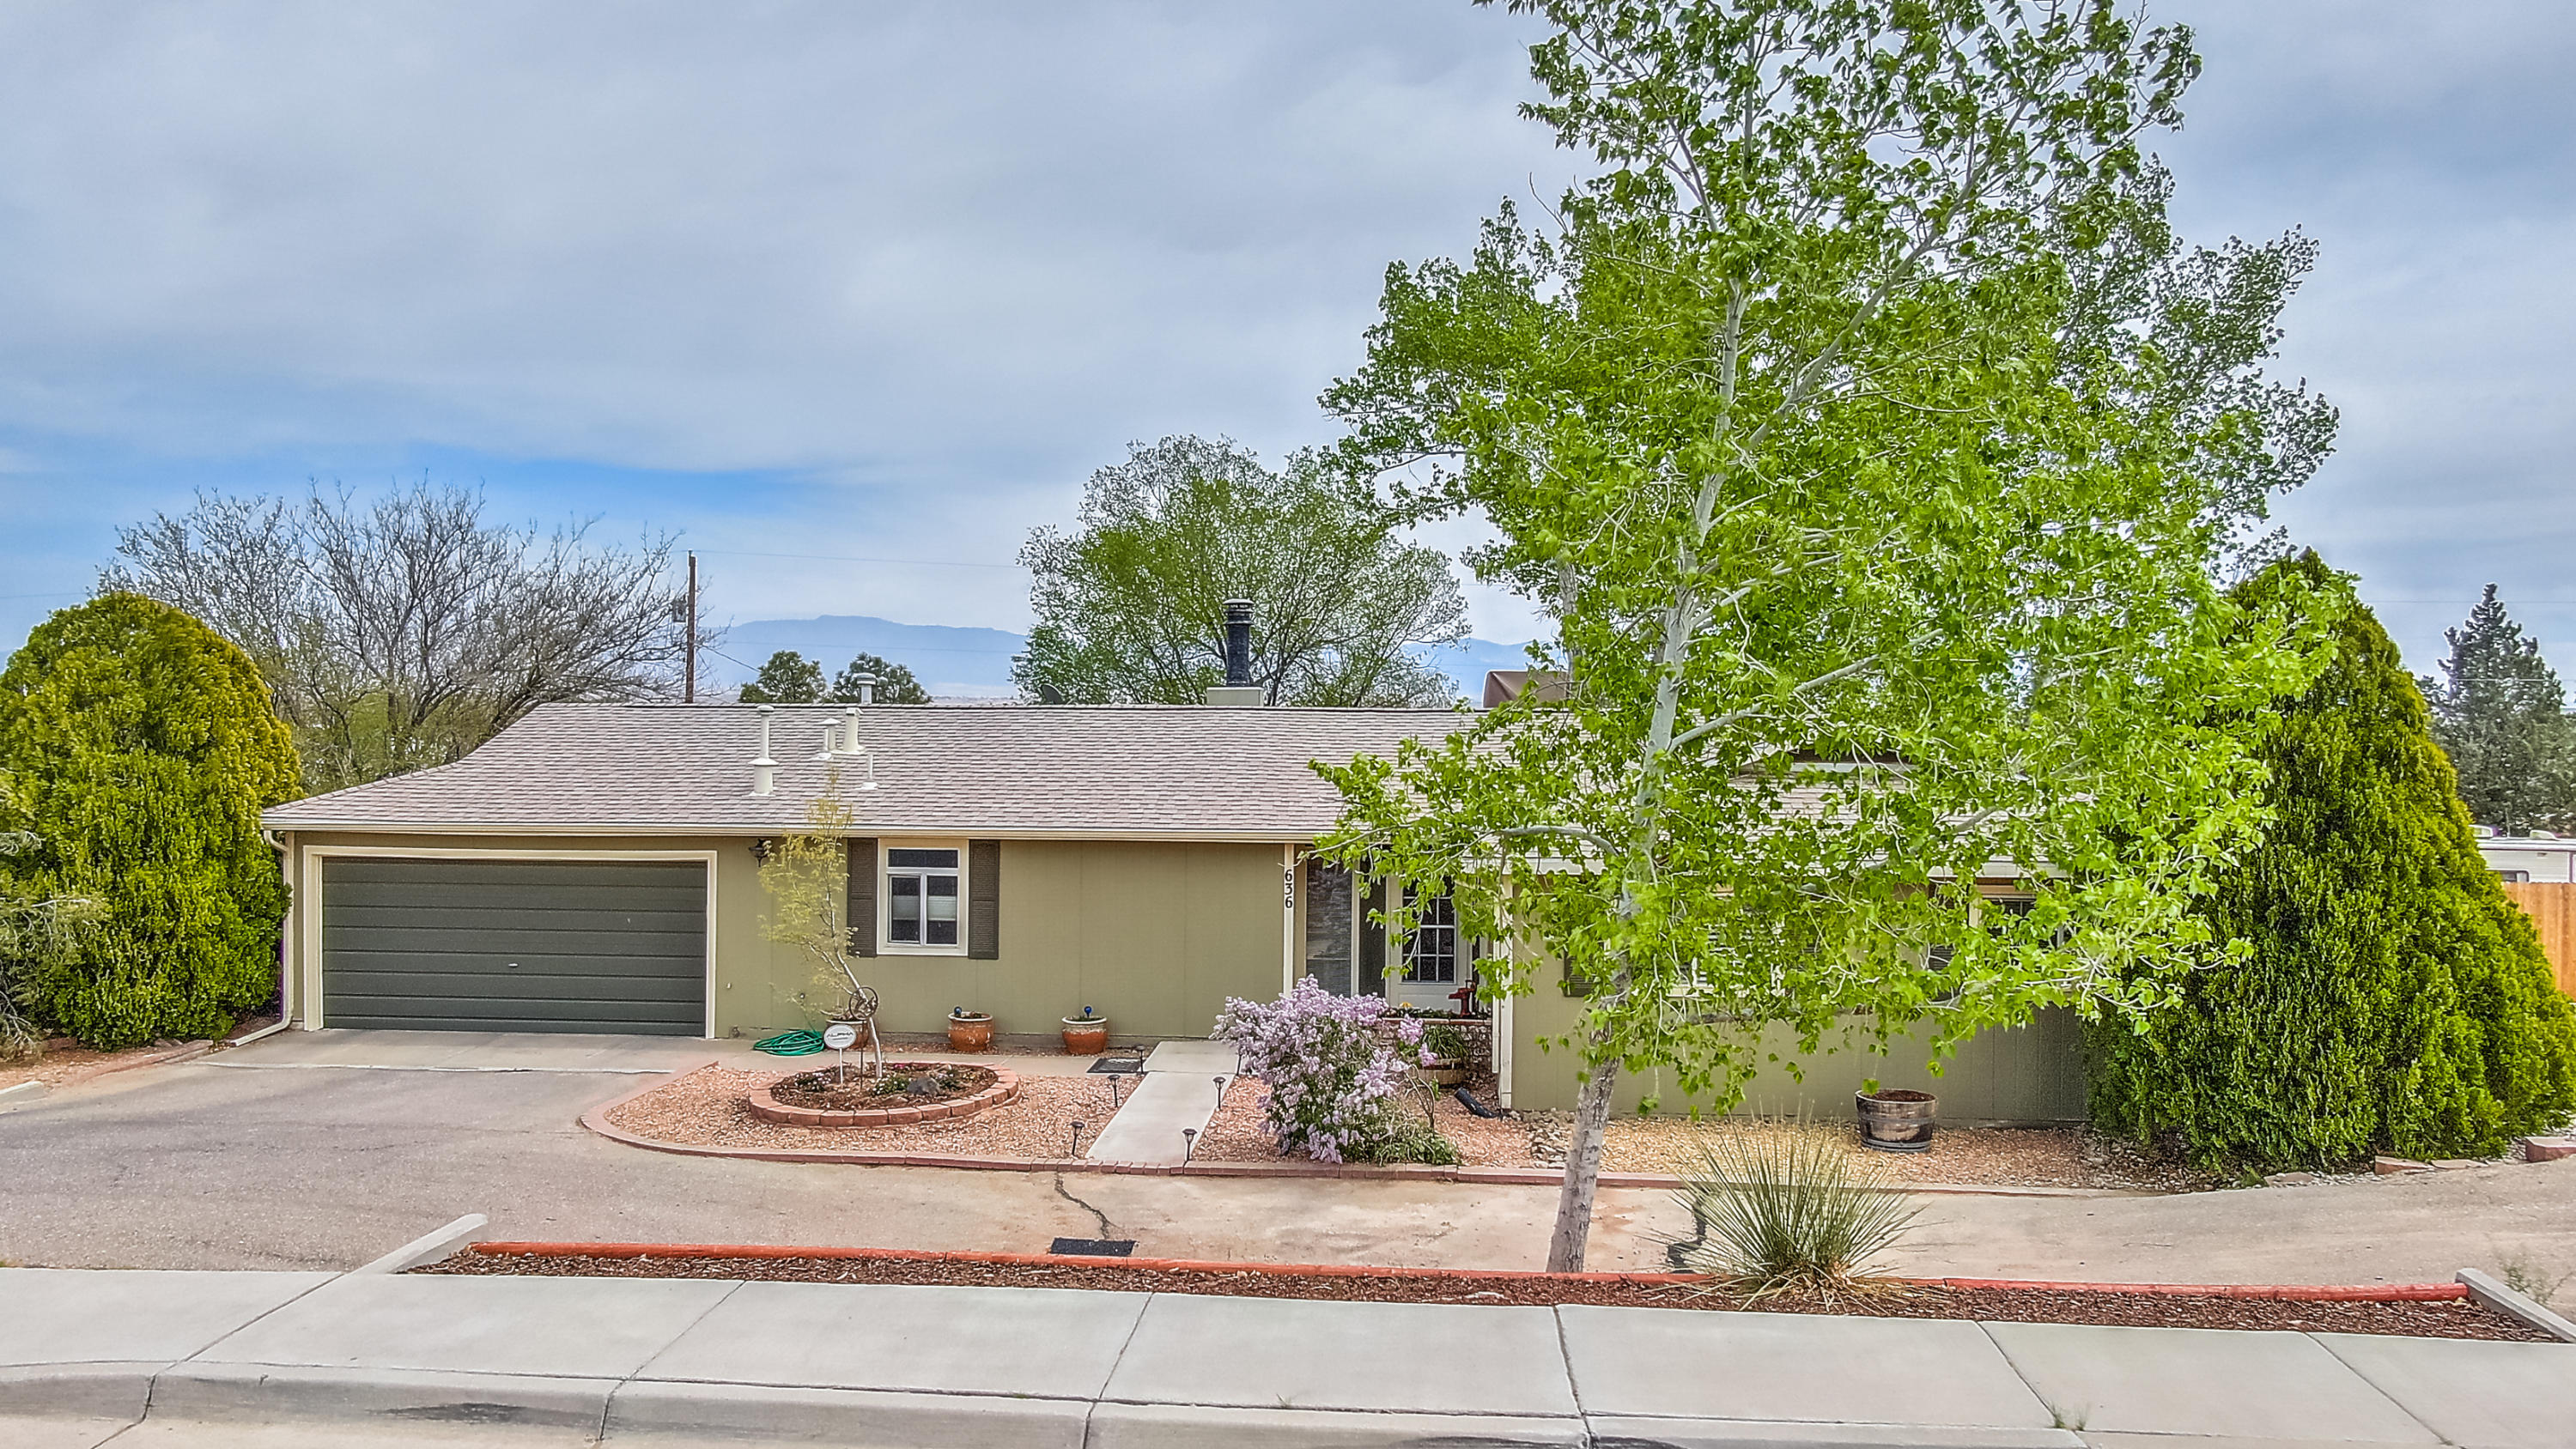 Showings Start Thursday May 6!Beautifully remodeled one story ranch style home on just over 1/2 acre landscaped.  Move in ready. Remodeled open plan kitchen with wine cooler, coffee bar, & pot filler faucet with newer flooring-tile, hardwood and pergo. Remodeled master bathroom 2019 with tub and separate shower. Backyard is great for entertaining with a custom built wood fire pizza oven, gazebo, firepit and large patio.  Oversized family room.  Huge laundry room with lots of storage space. Area on side of home large enough to park RV and boat. Driveway just resealed.Roof and gutter new in 2014, furnace 2017 and Cooler 2015.  Easy access to the freeway, shopping and restaurants. Don't miss this Wonderful Home!